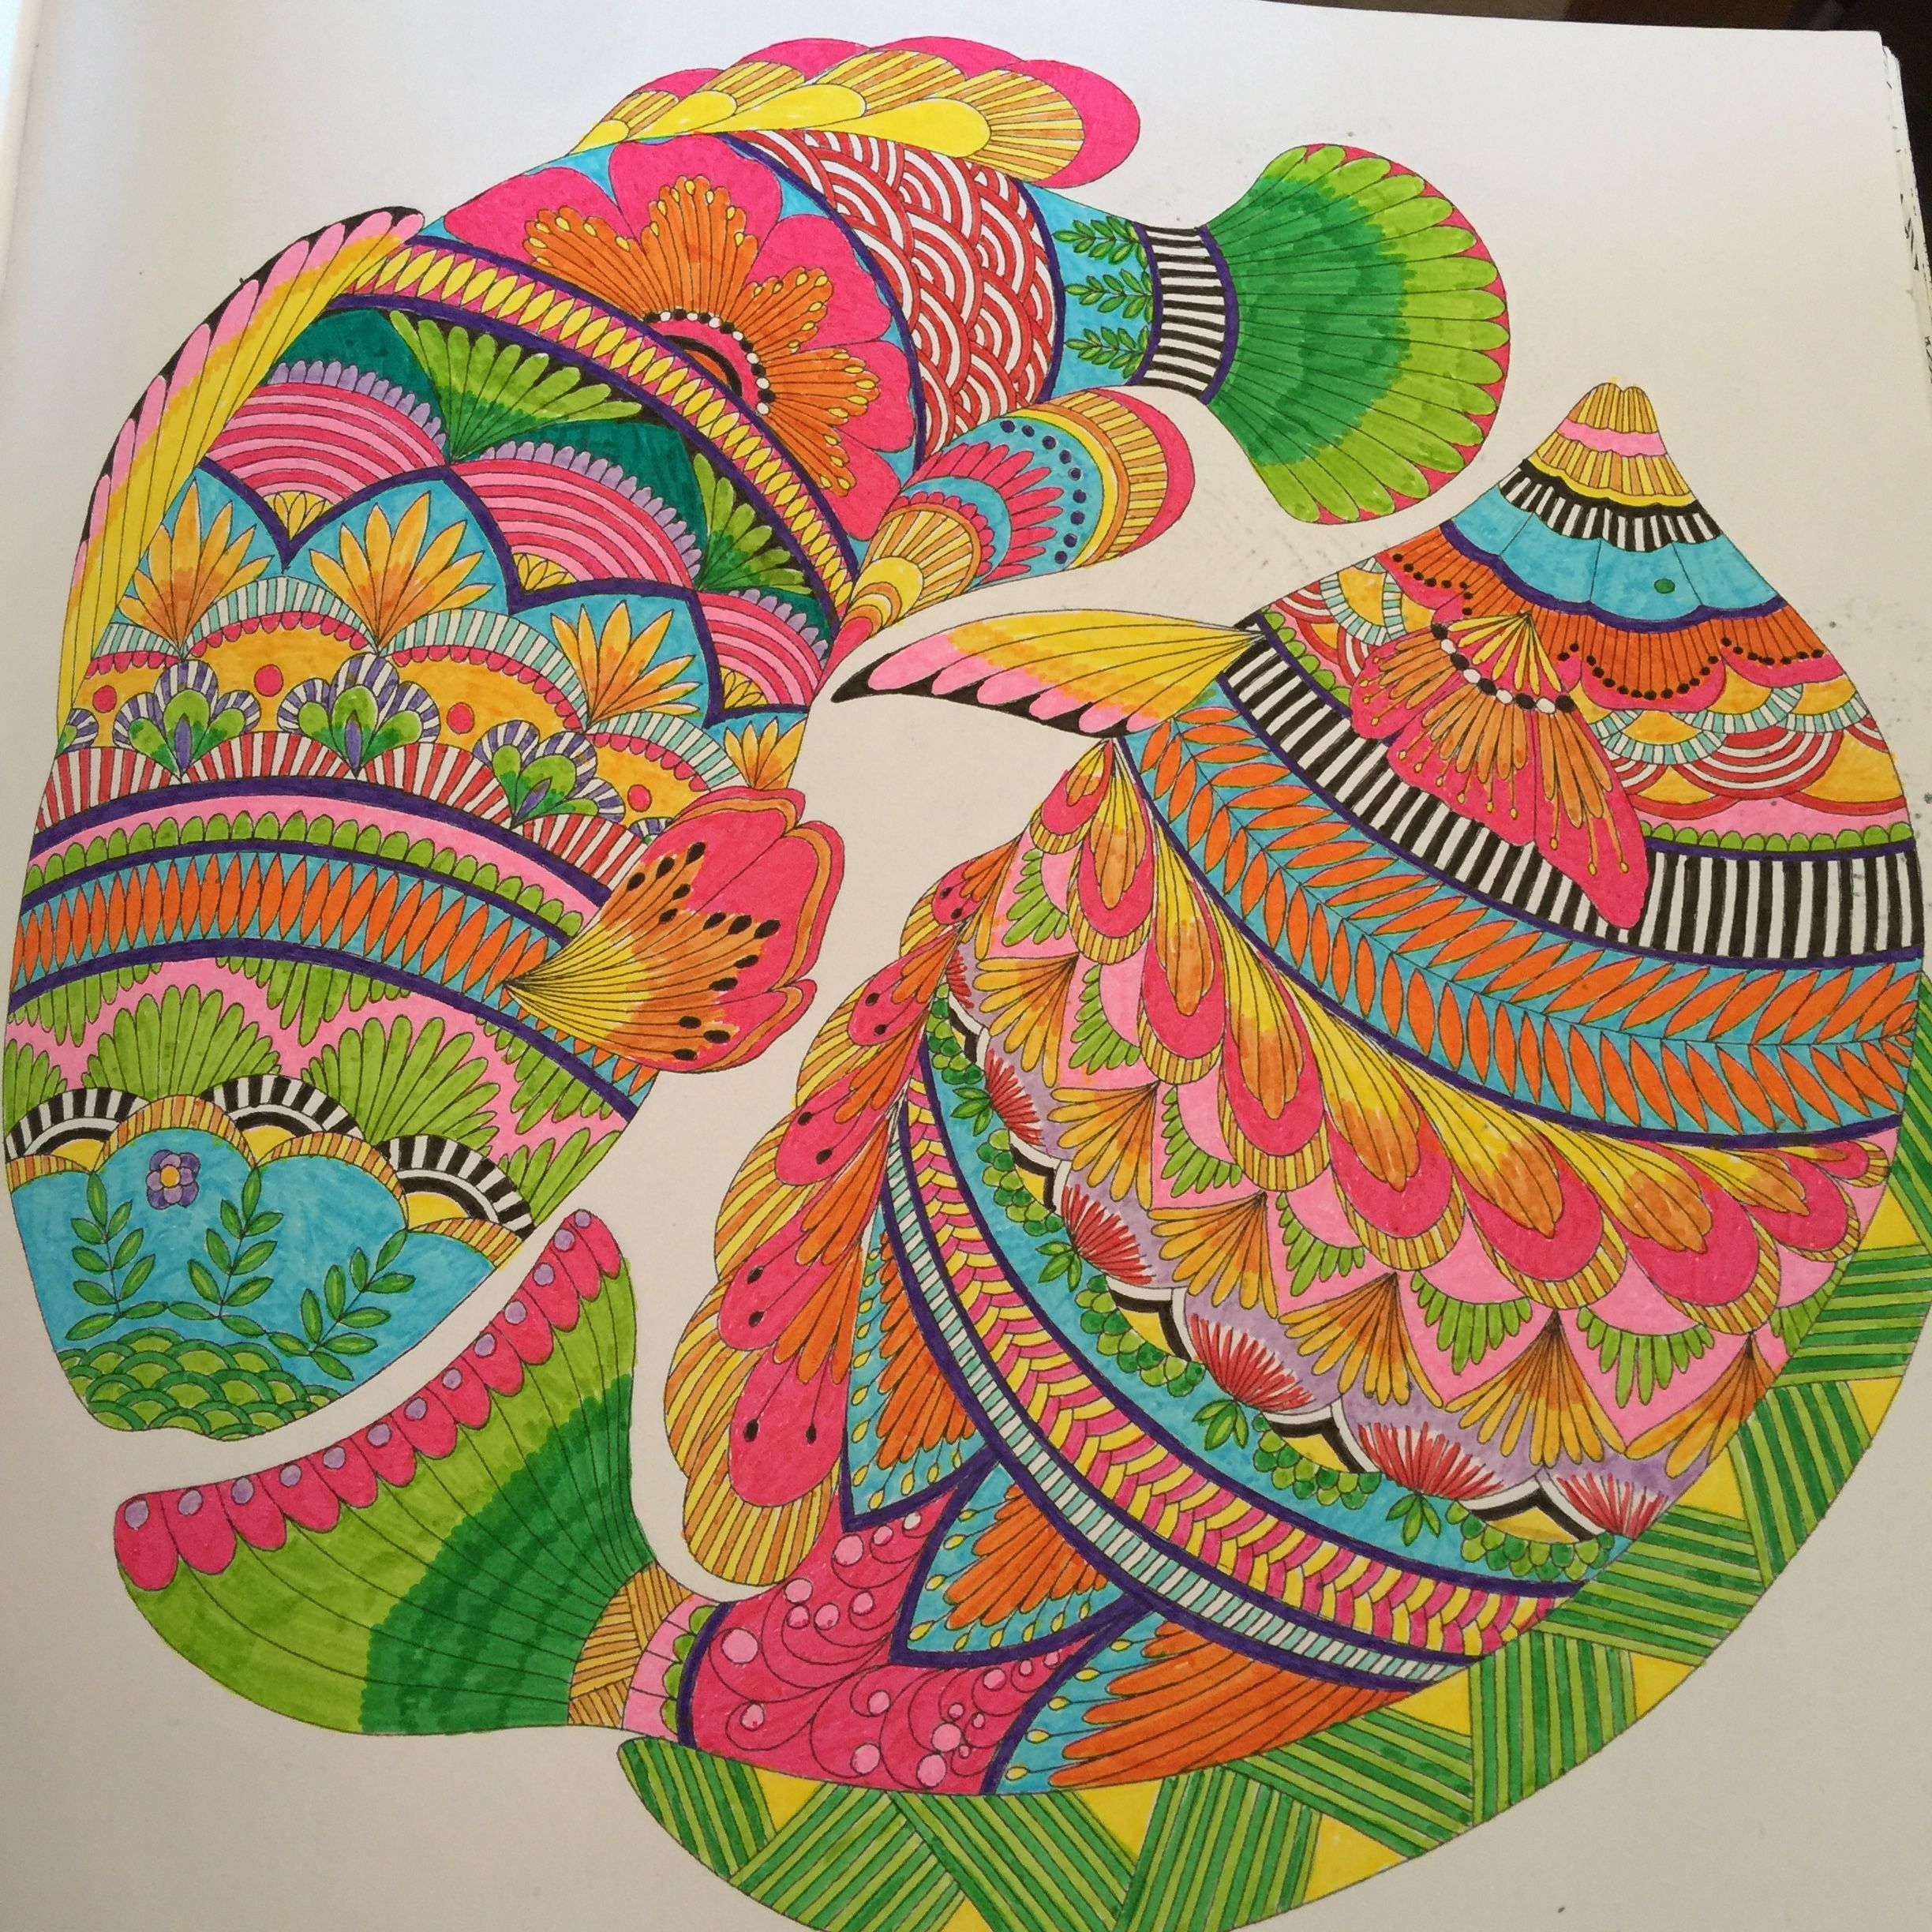 Colouring From My Animal Kingdom Colouring Book Milliemarotta Fish Millie Marotta Coloring Book Animal Kingdom Colouring Book Millie Marotta Animal Kingdom